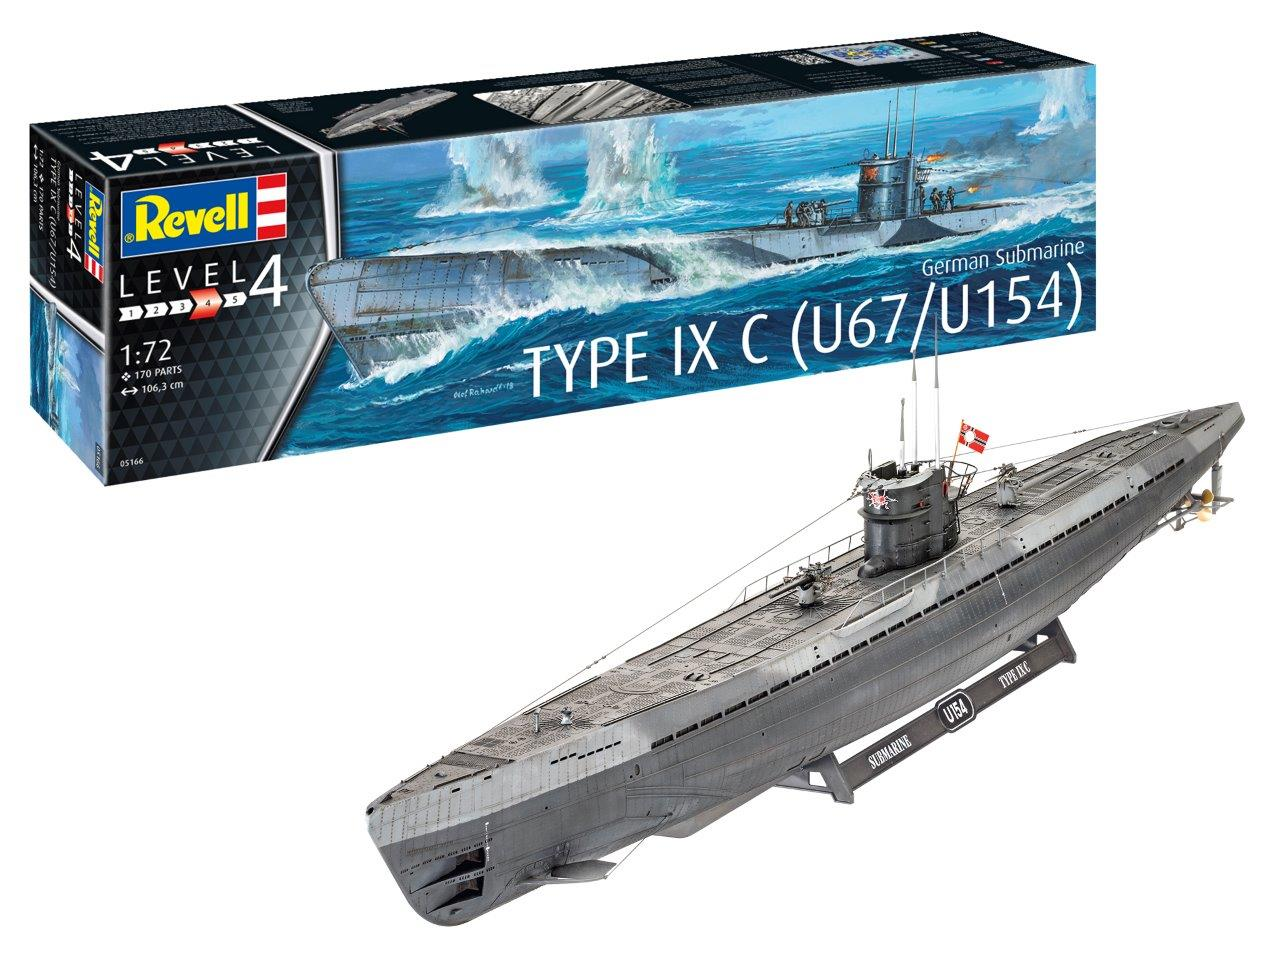 hight resolution of description german submarine type ixc early turret due september 2019 manufacturer revell code number rv5166 scale 1 72 item type ship kits